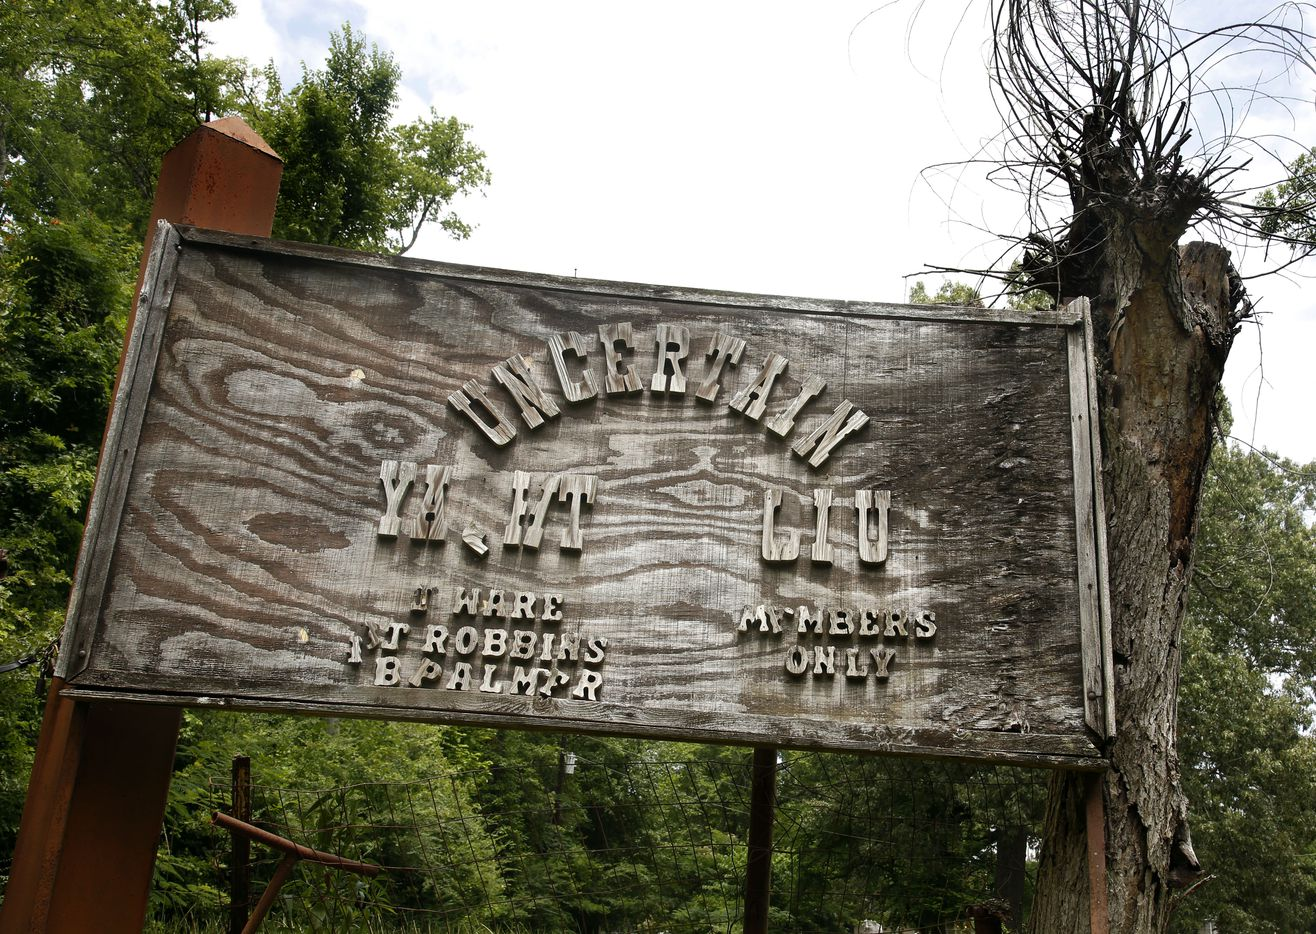 The sign at the entrance to the private Uncertain Yacht Club has seen better days. Photographed at Caddo Lake in Uncertain, Texas Tuesday June 19, 2018.